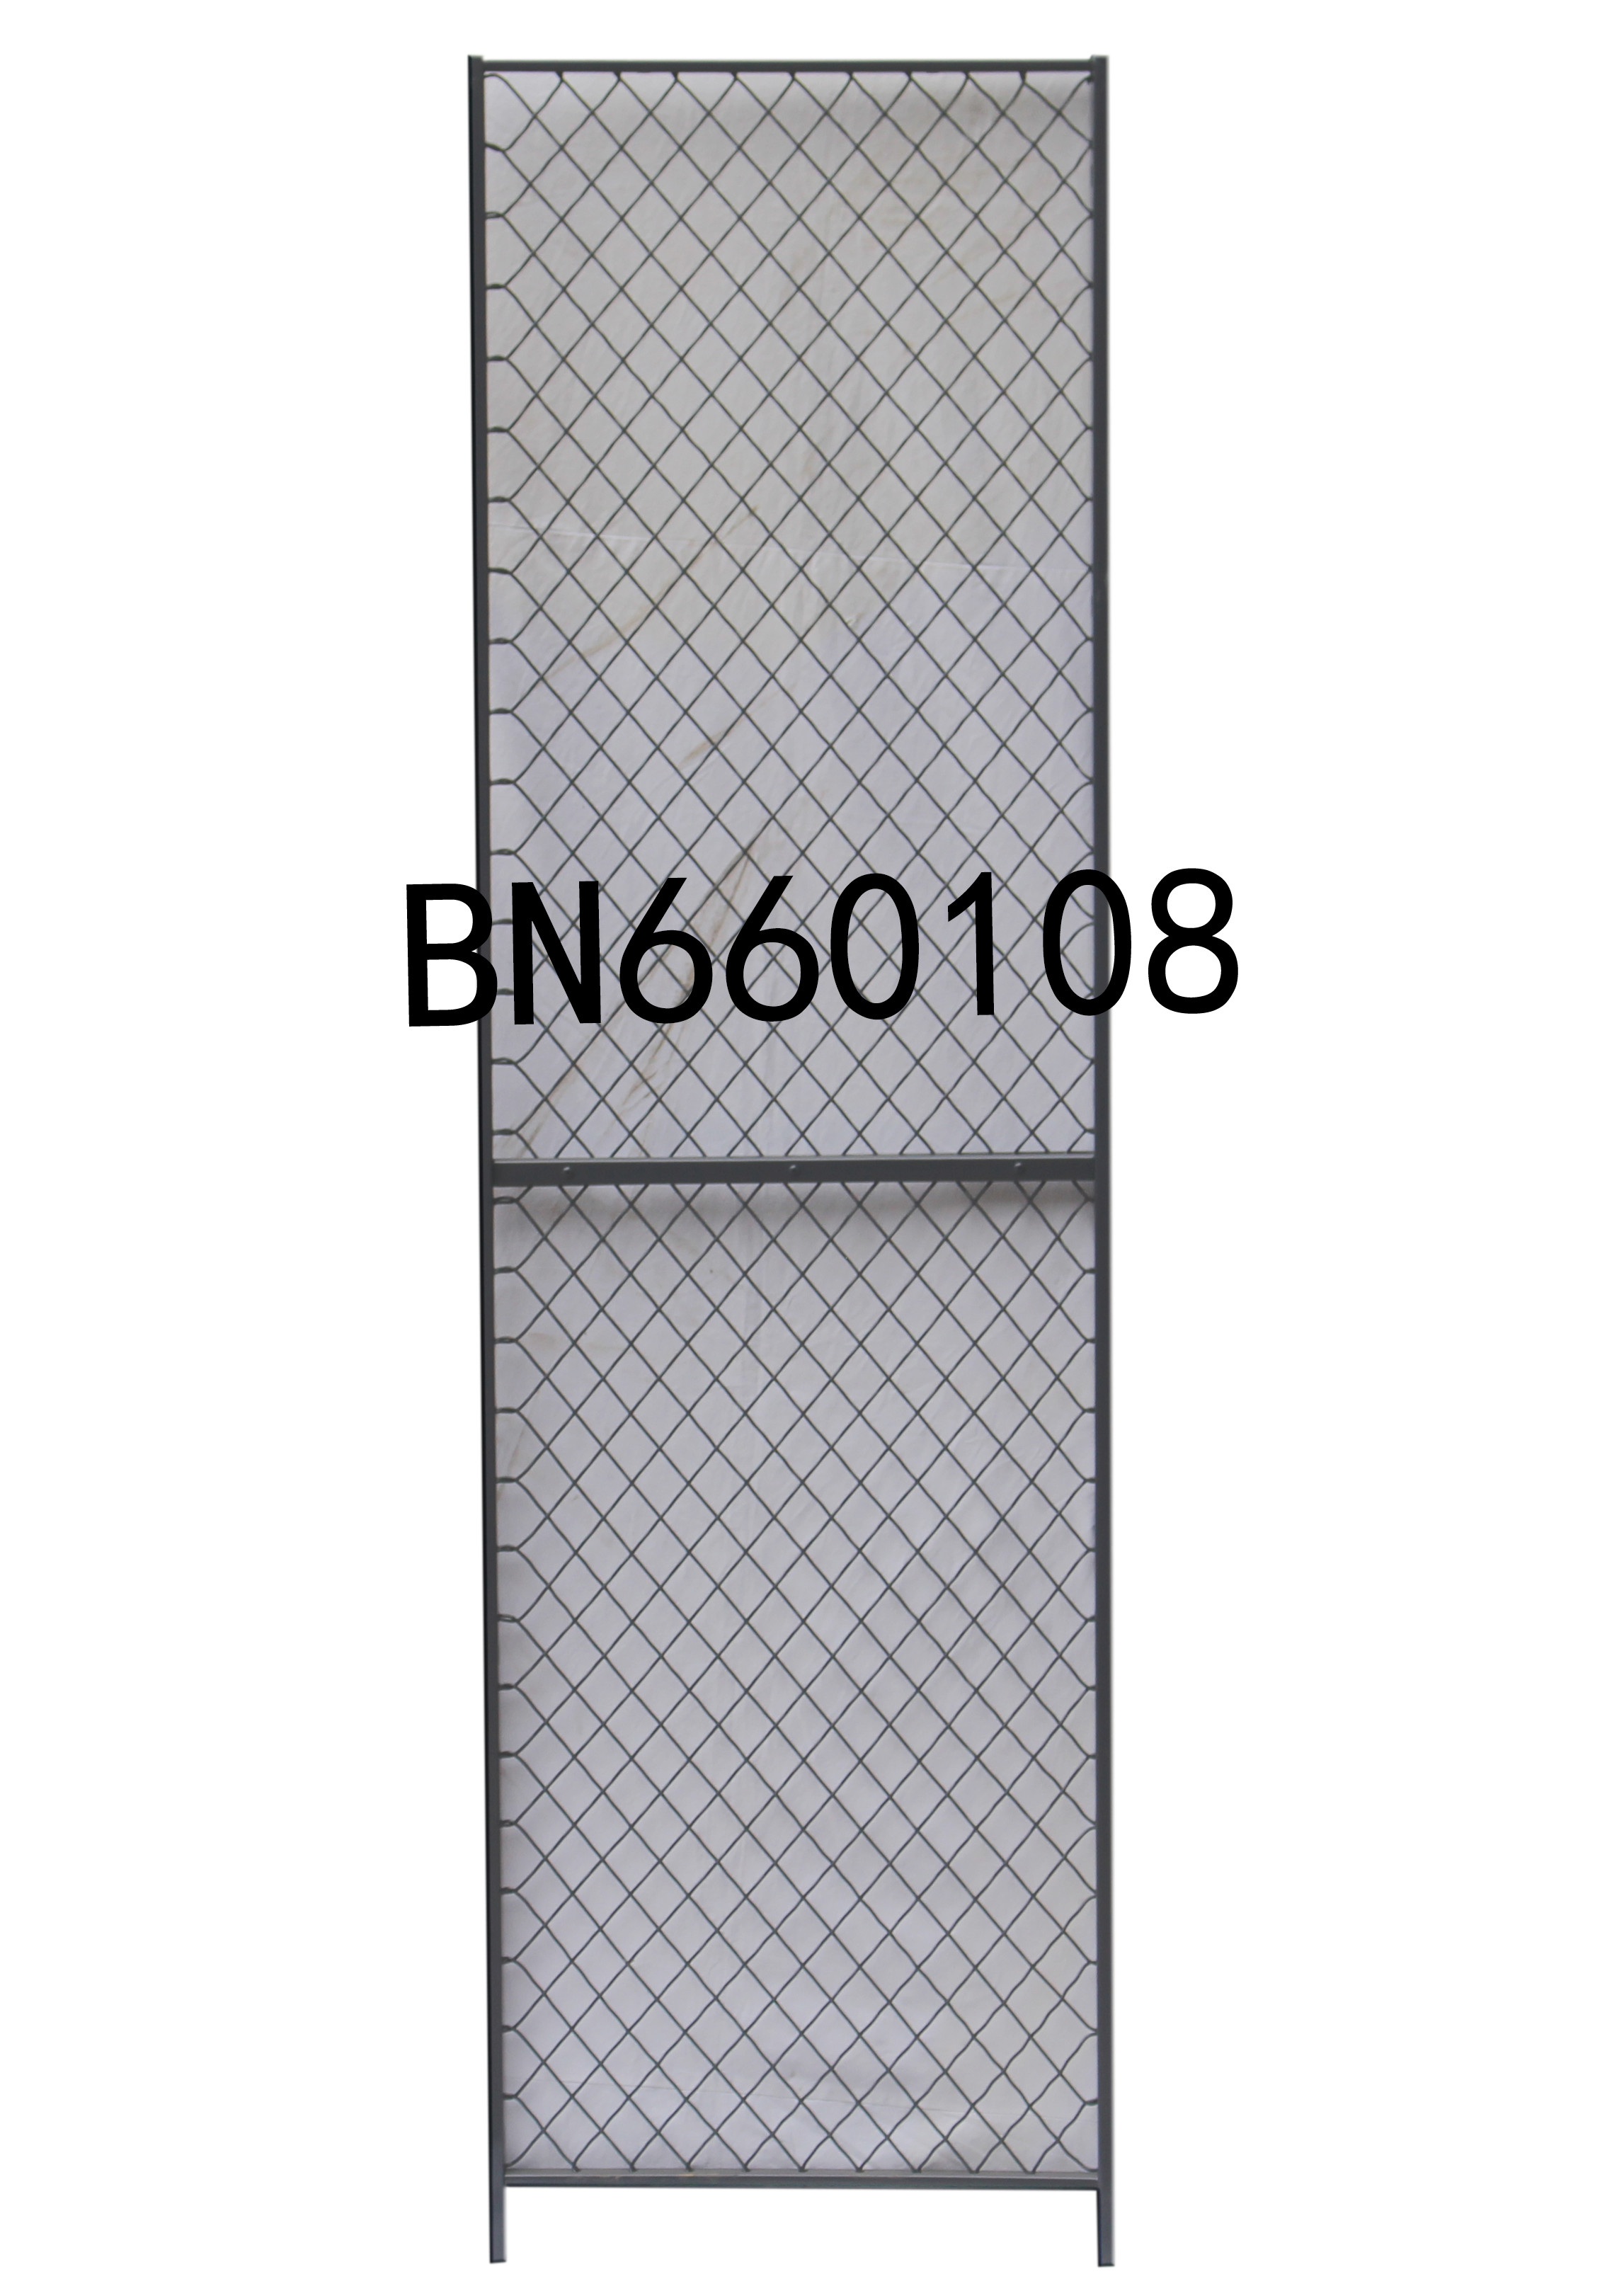 8 High X 1 Wide Steel Mesh Partitioning Woven Wire Mesh Panels